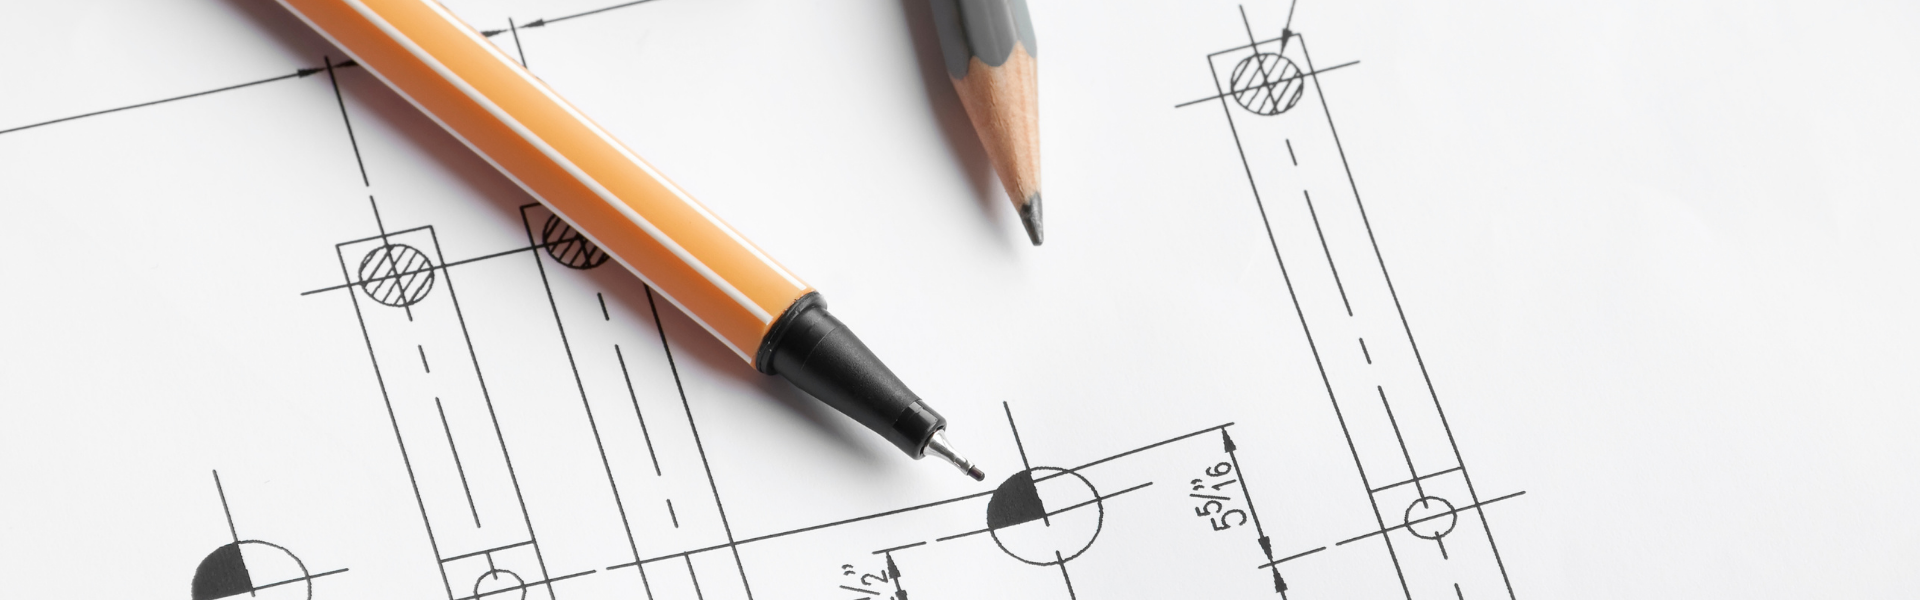 Church Heating Specialist's design and planning services